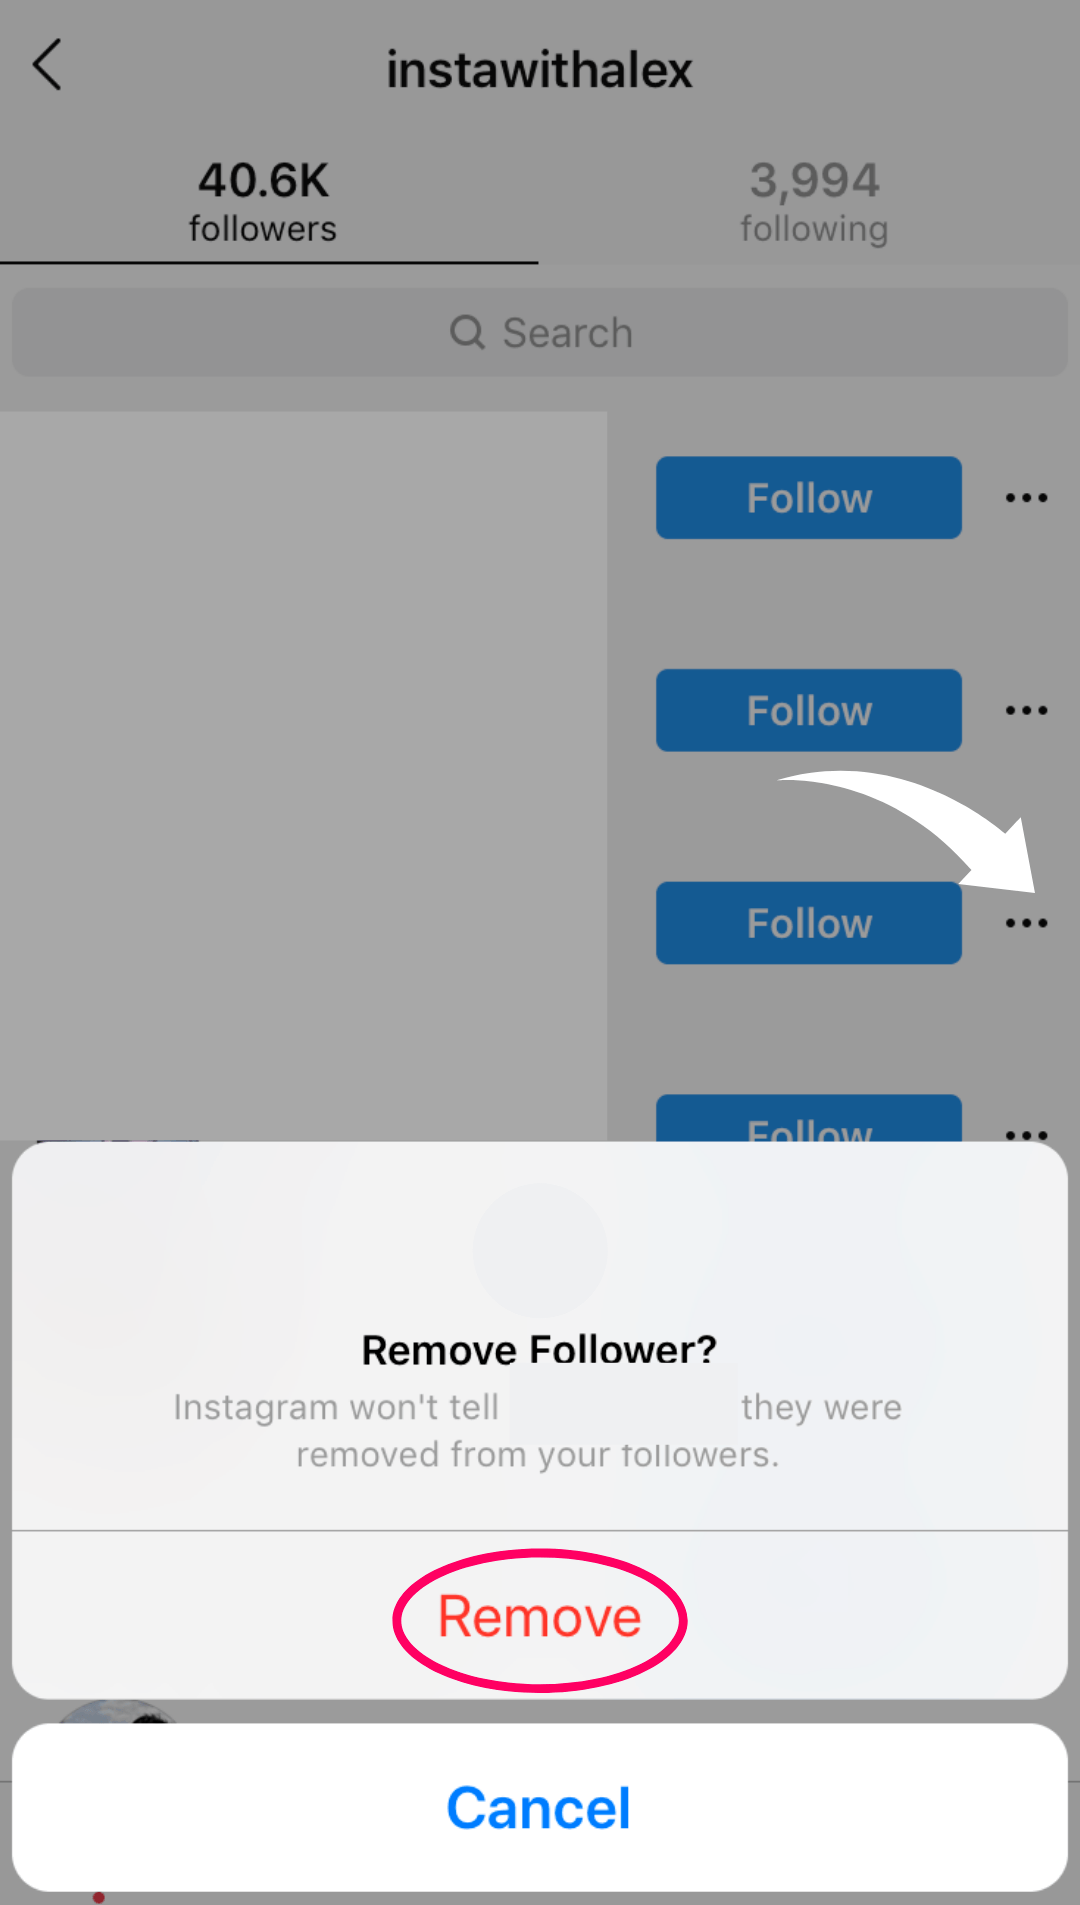 new instagram update - remove followers feature